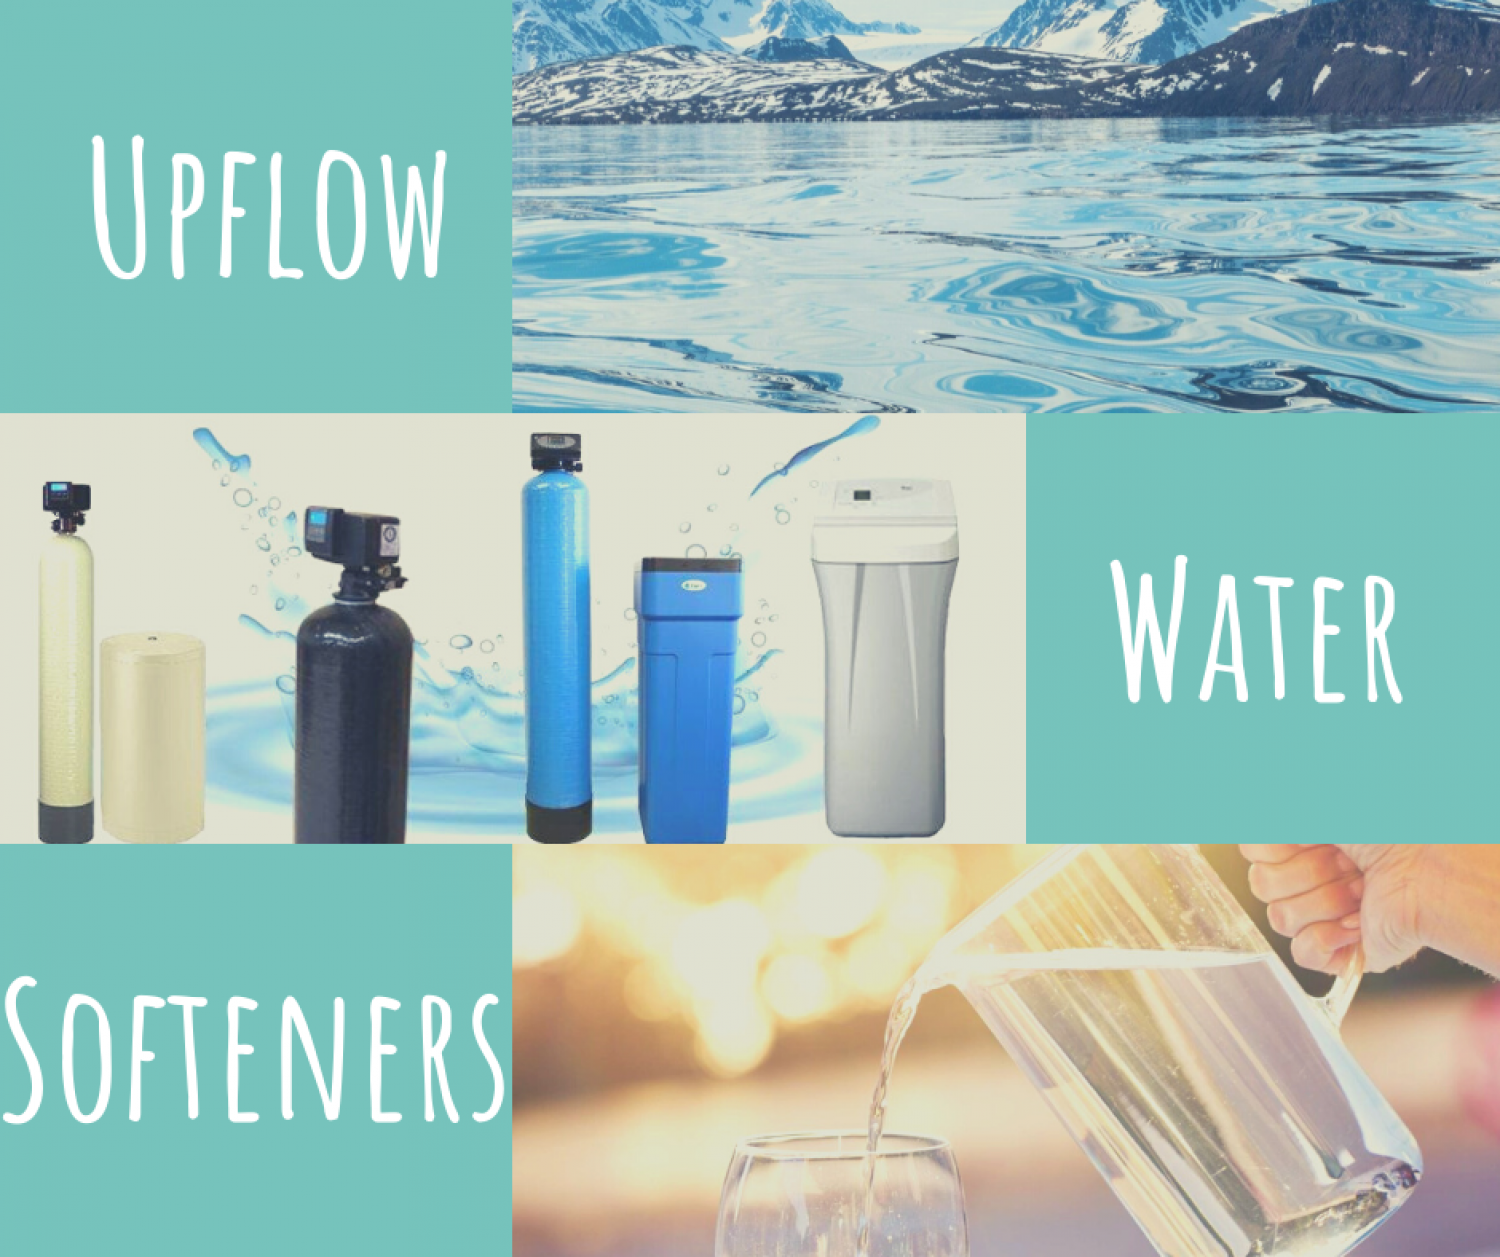 The Best Upflow Water Softeners for 2020 Infographic